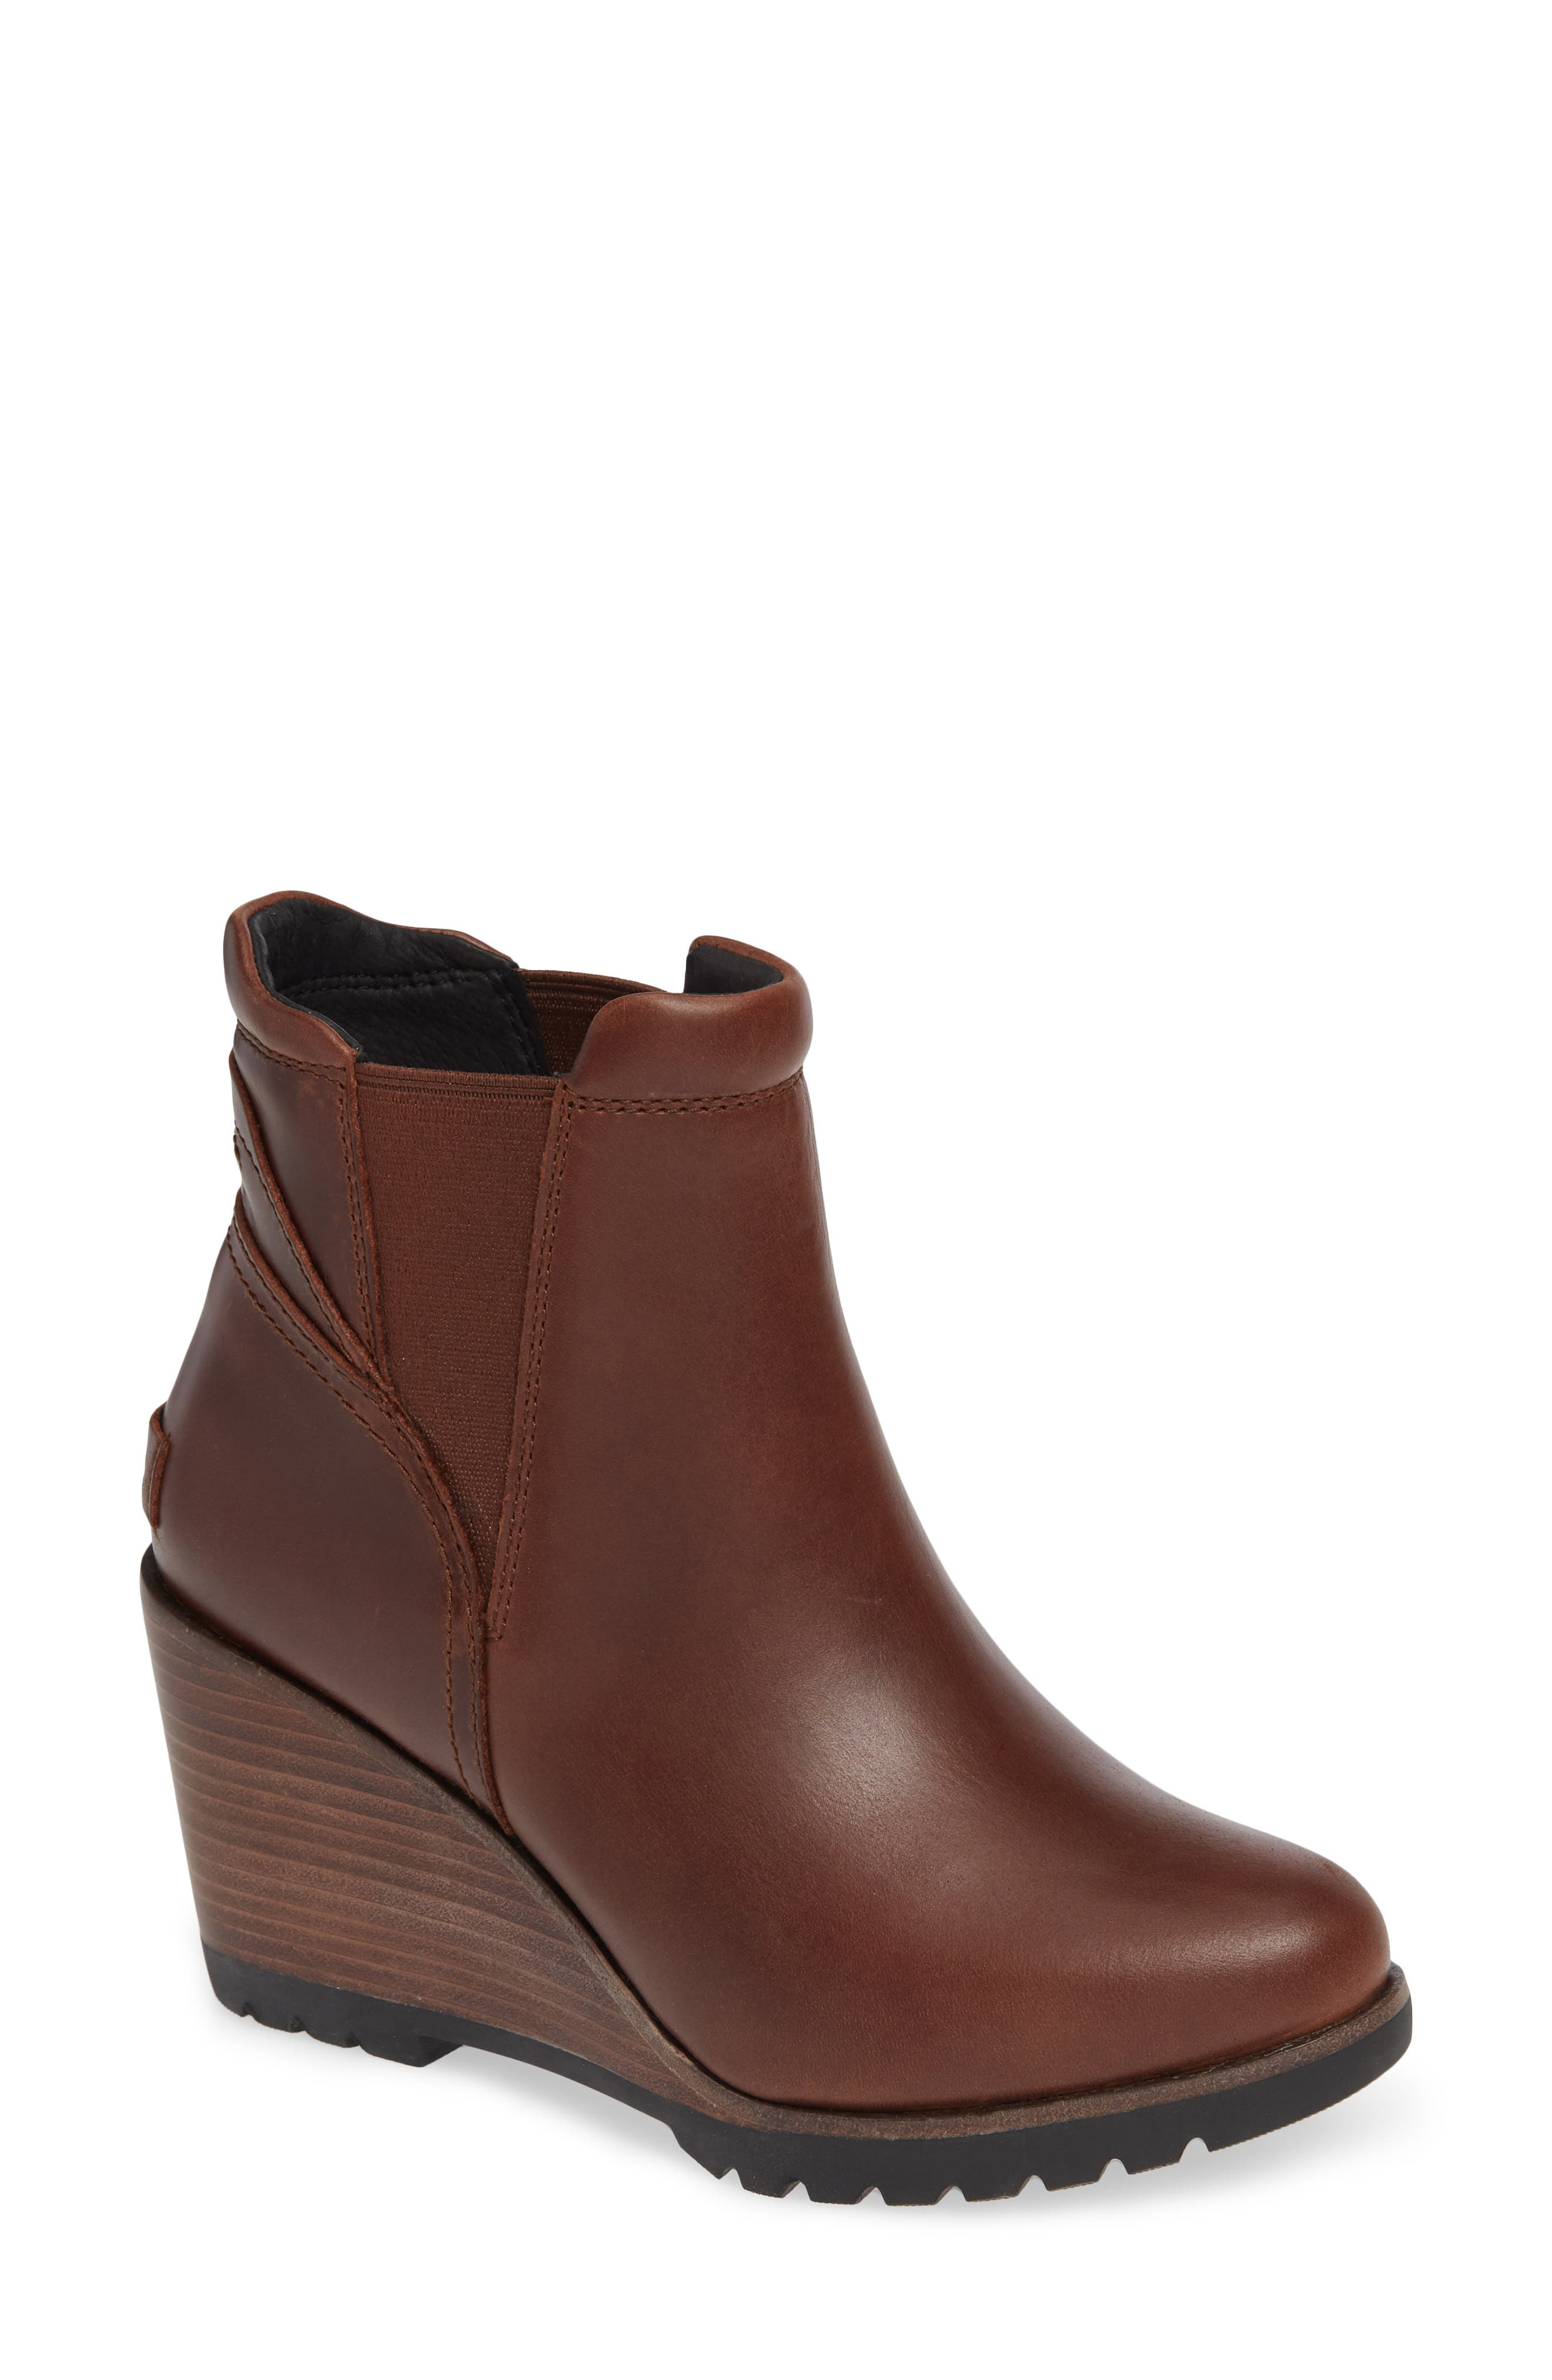 After Hours Chelsea Waterproof Boot,                         Main,                         color, 200